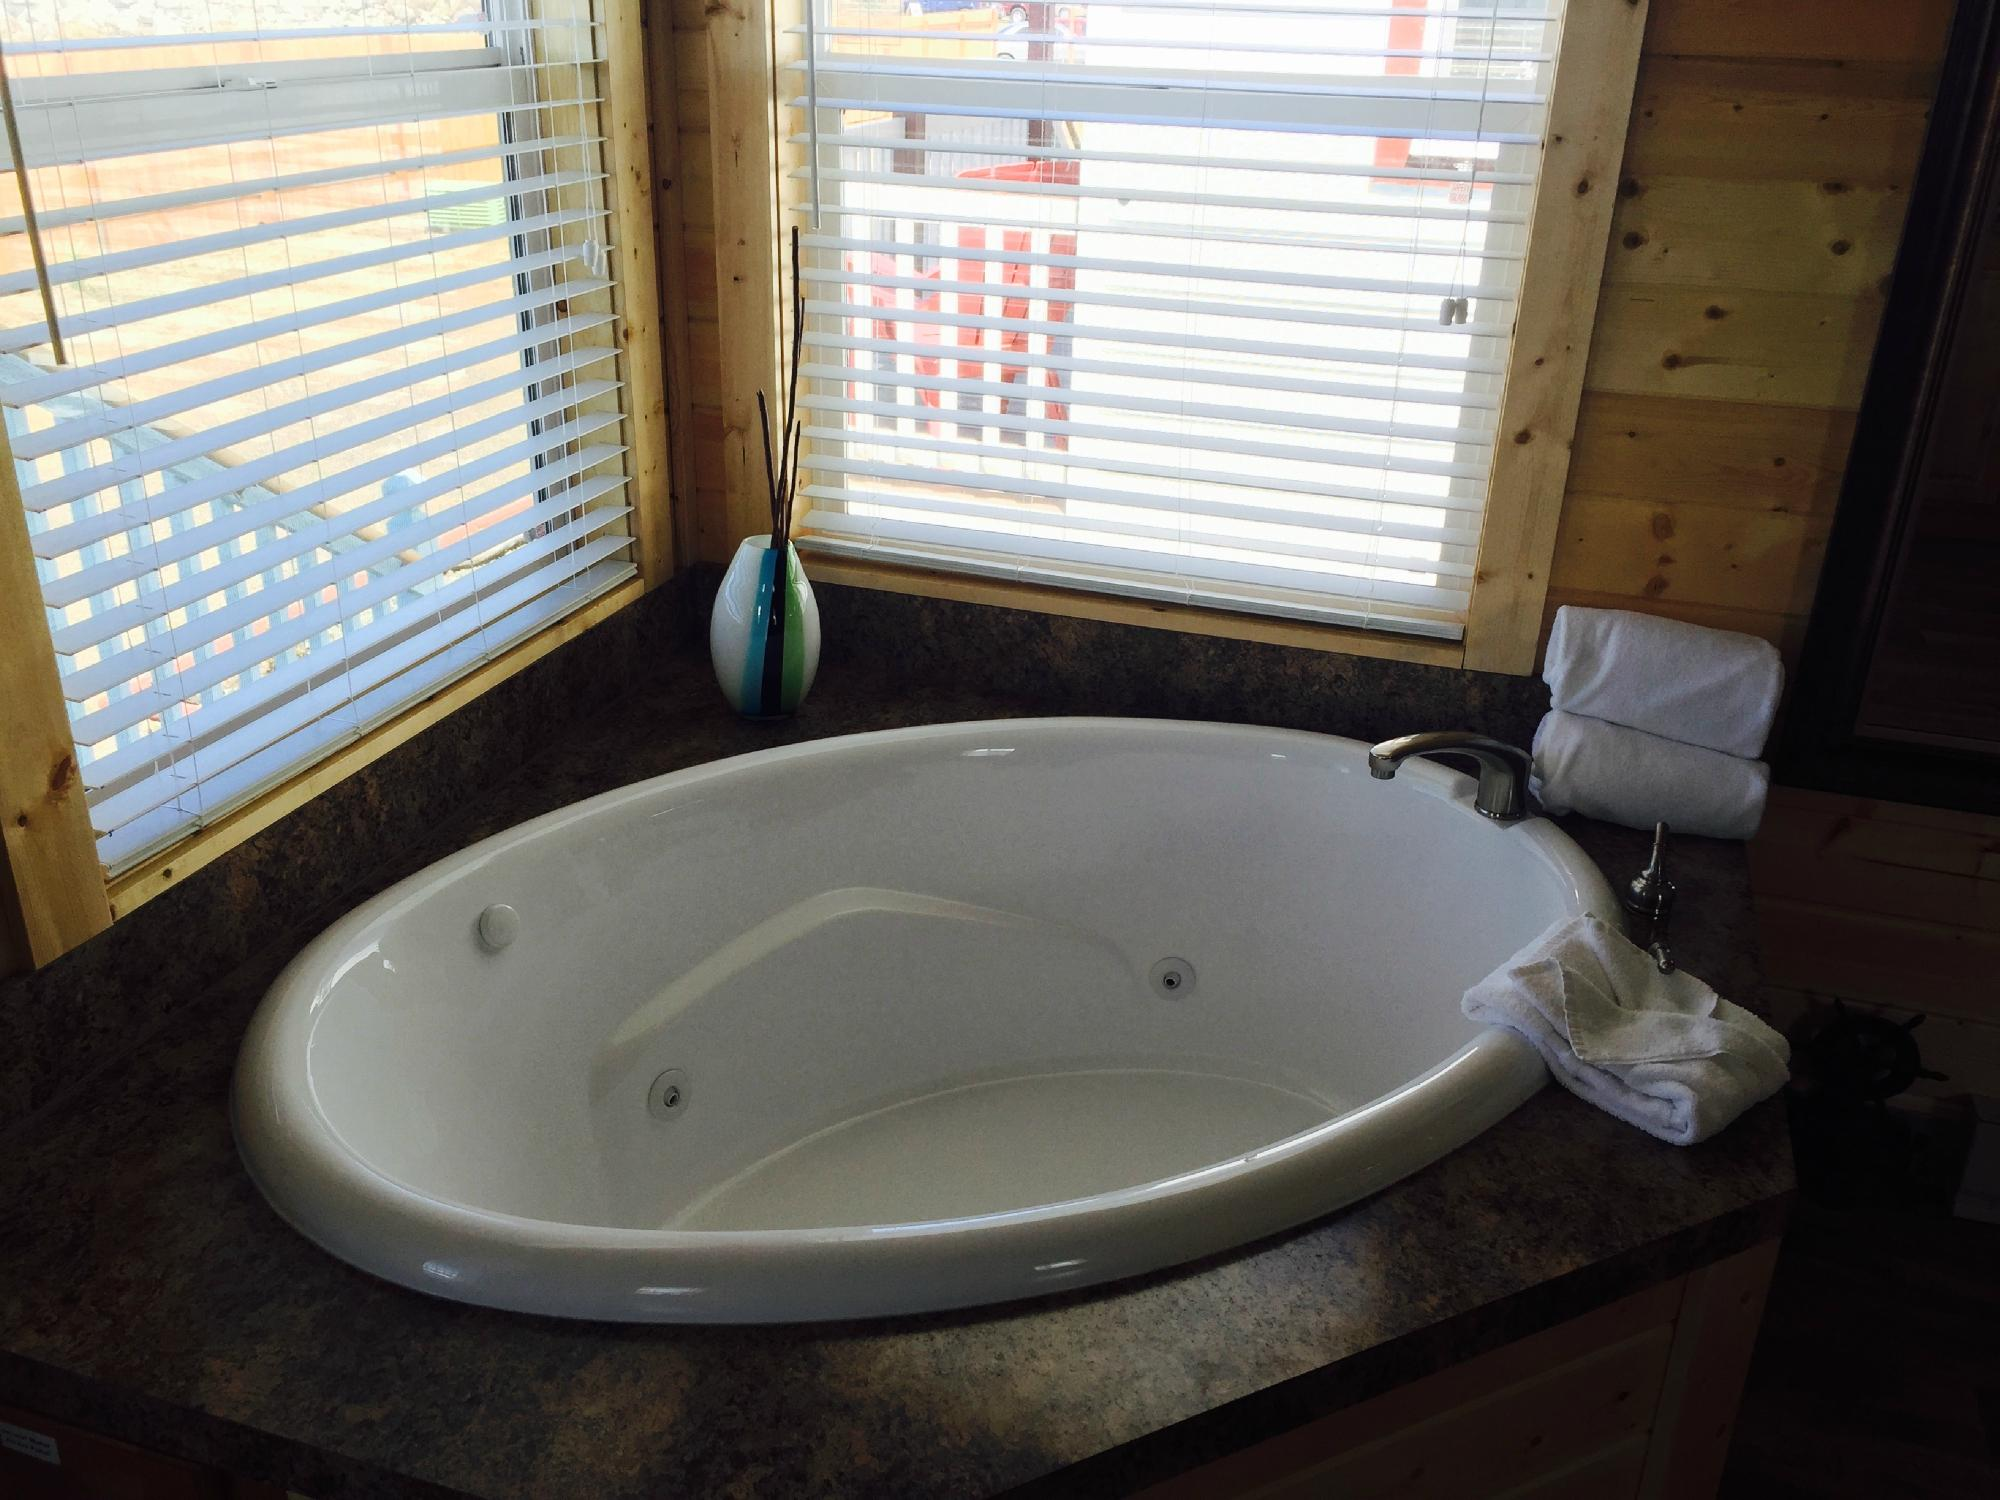 WEST COAST WASHINGTON STATE COTTAGES WITH HOT TUBS